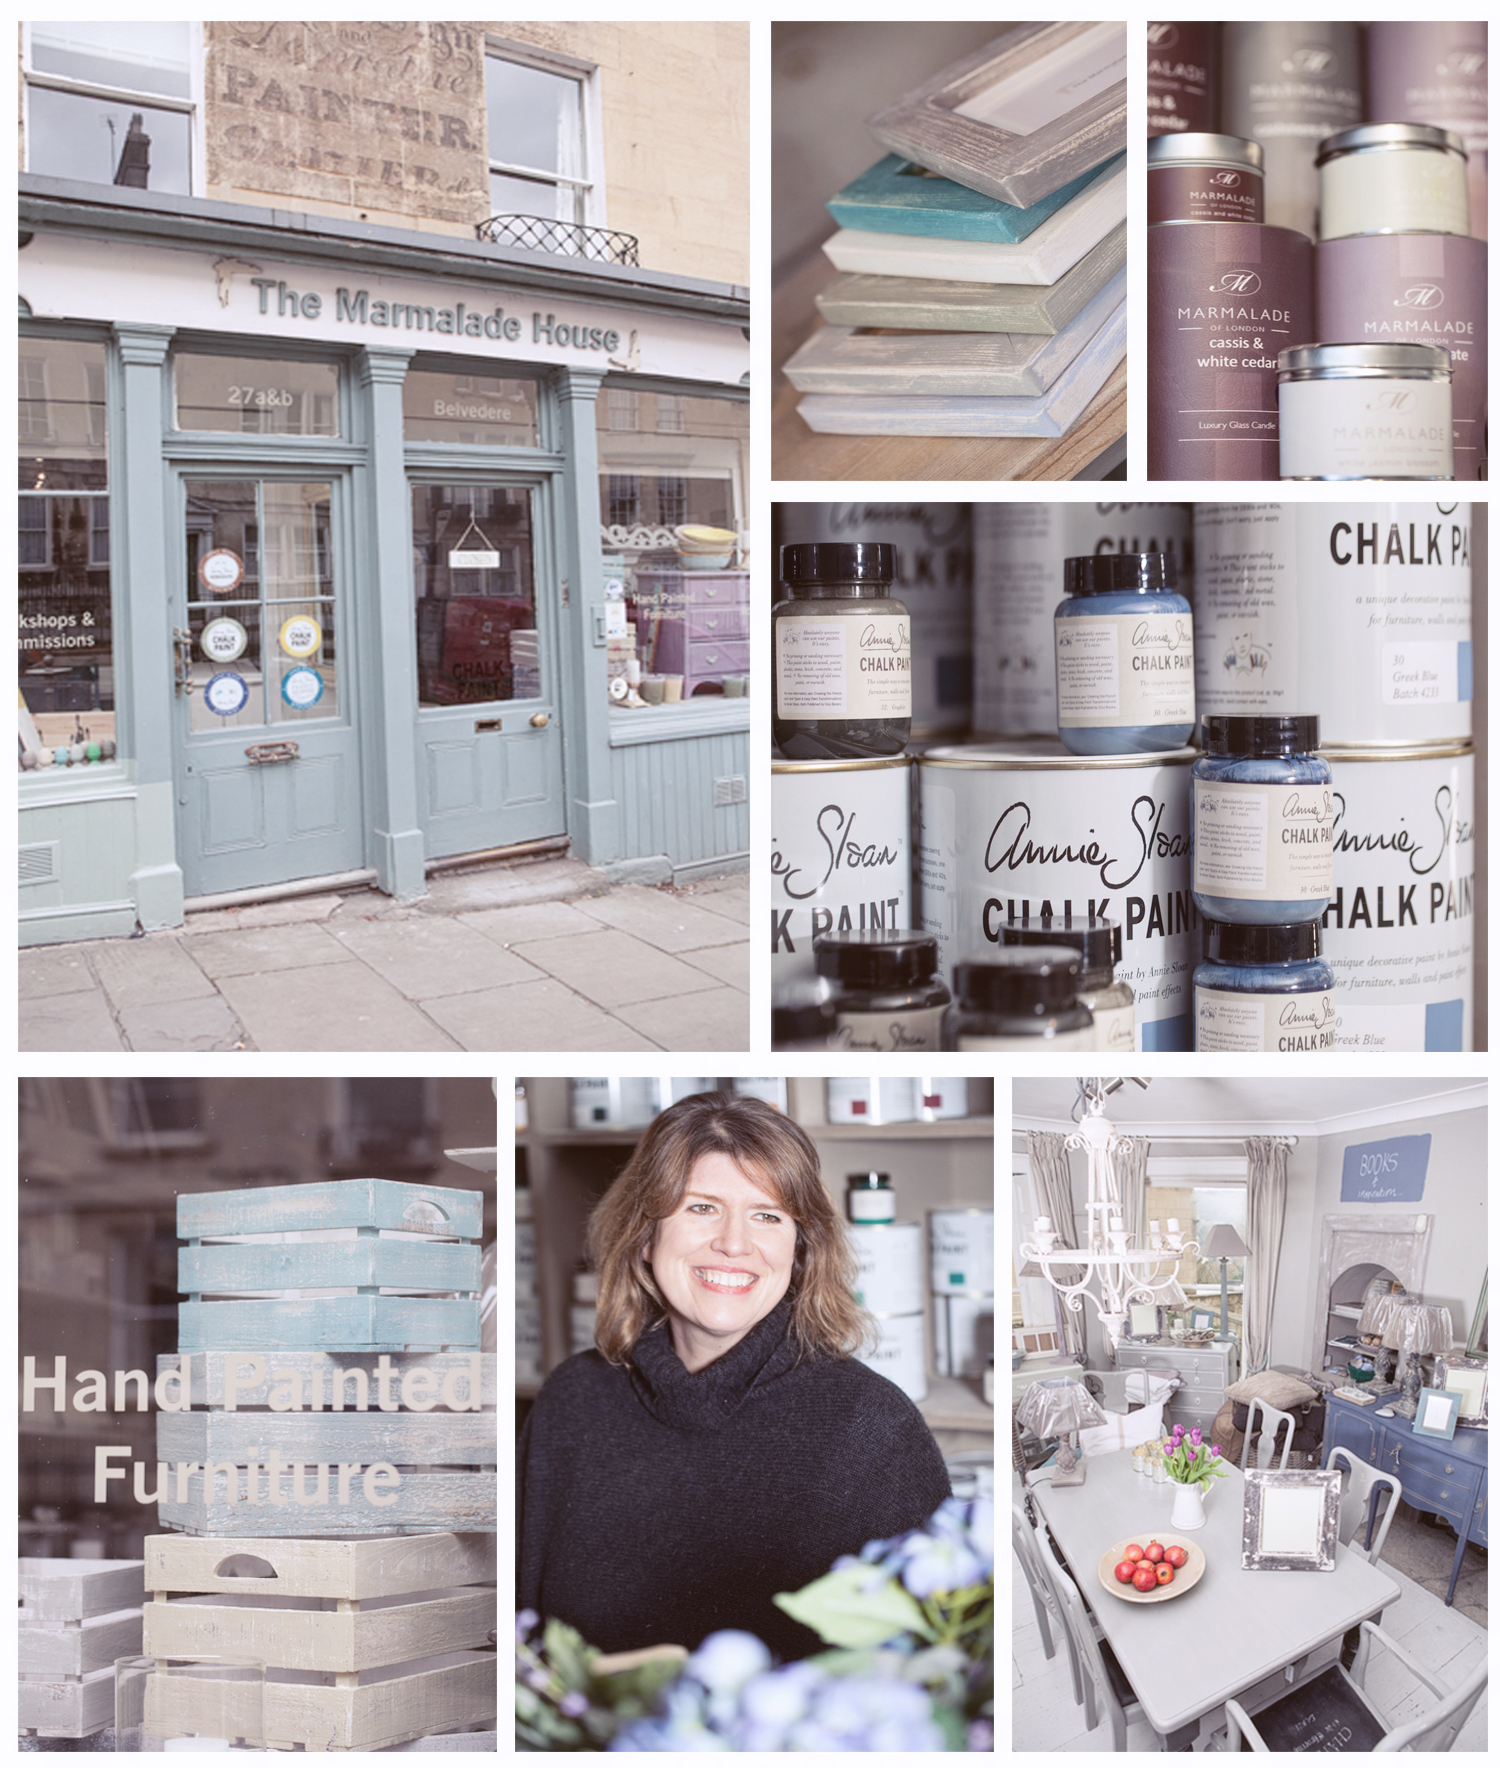 The Marmalade House, Bath, UK. Chalk painting furniture specialists